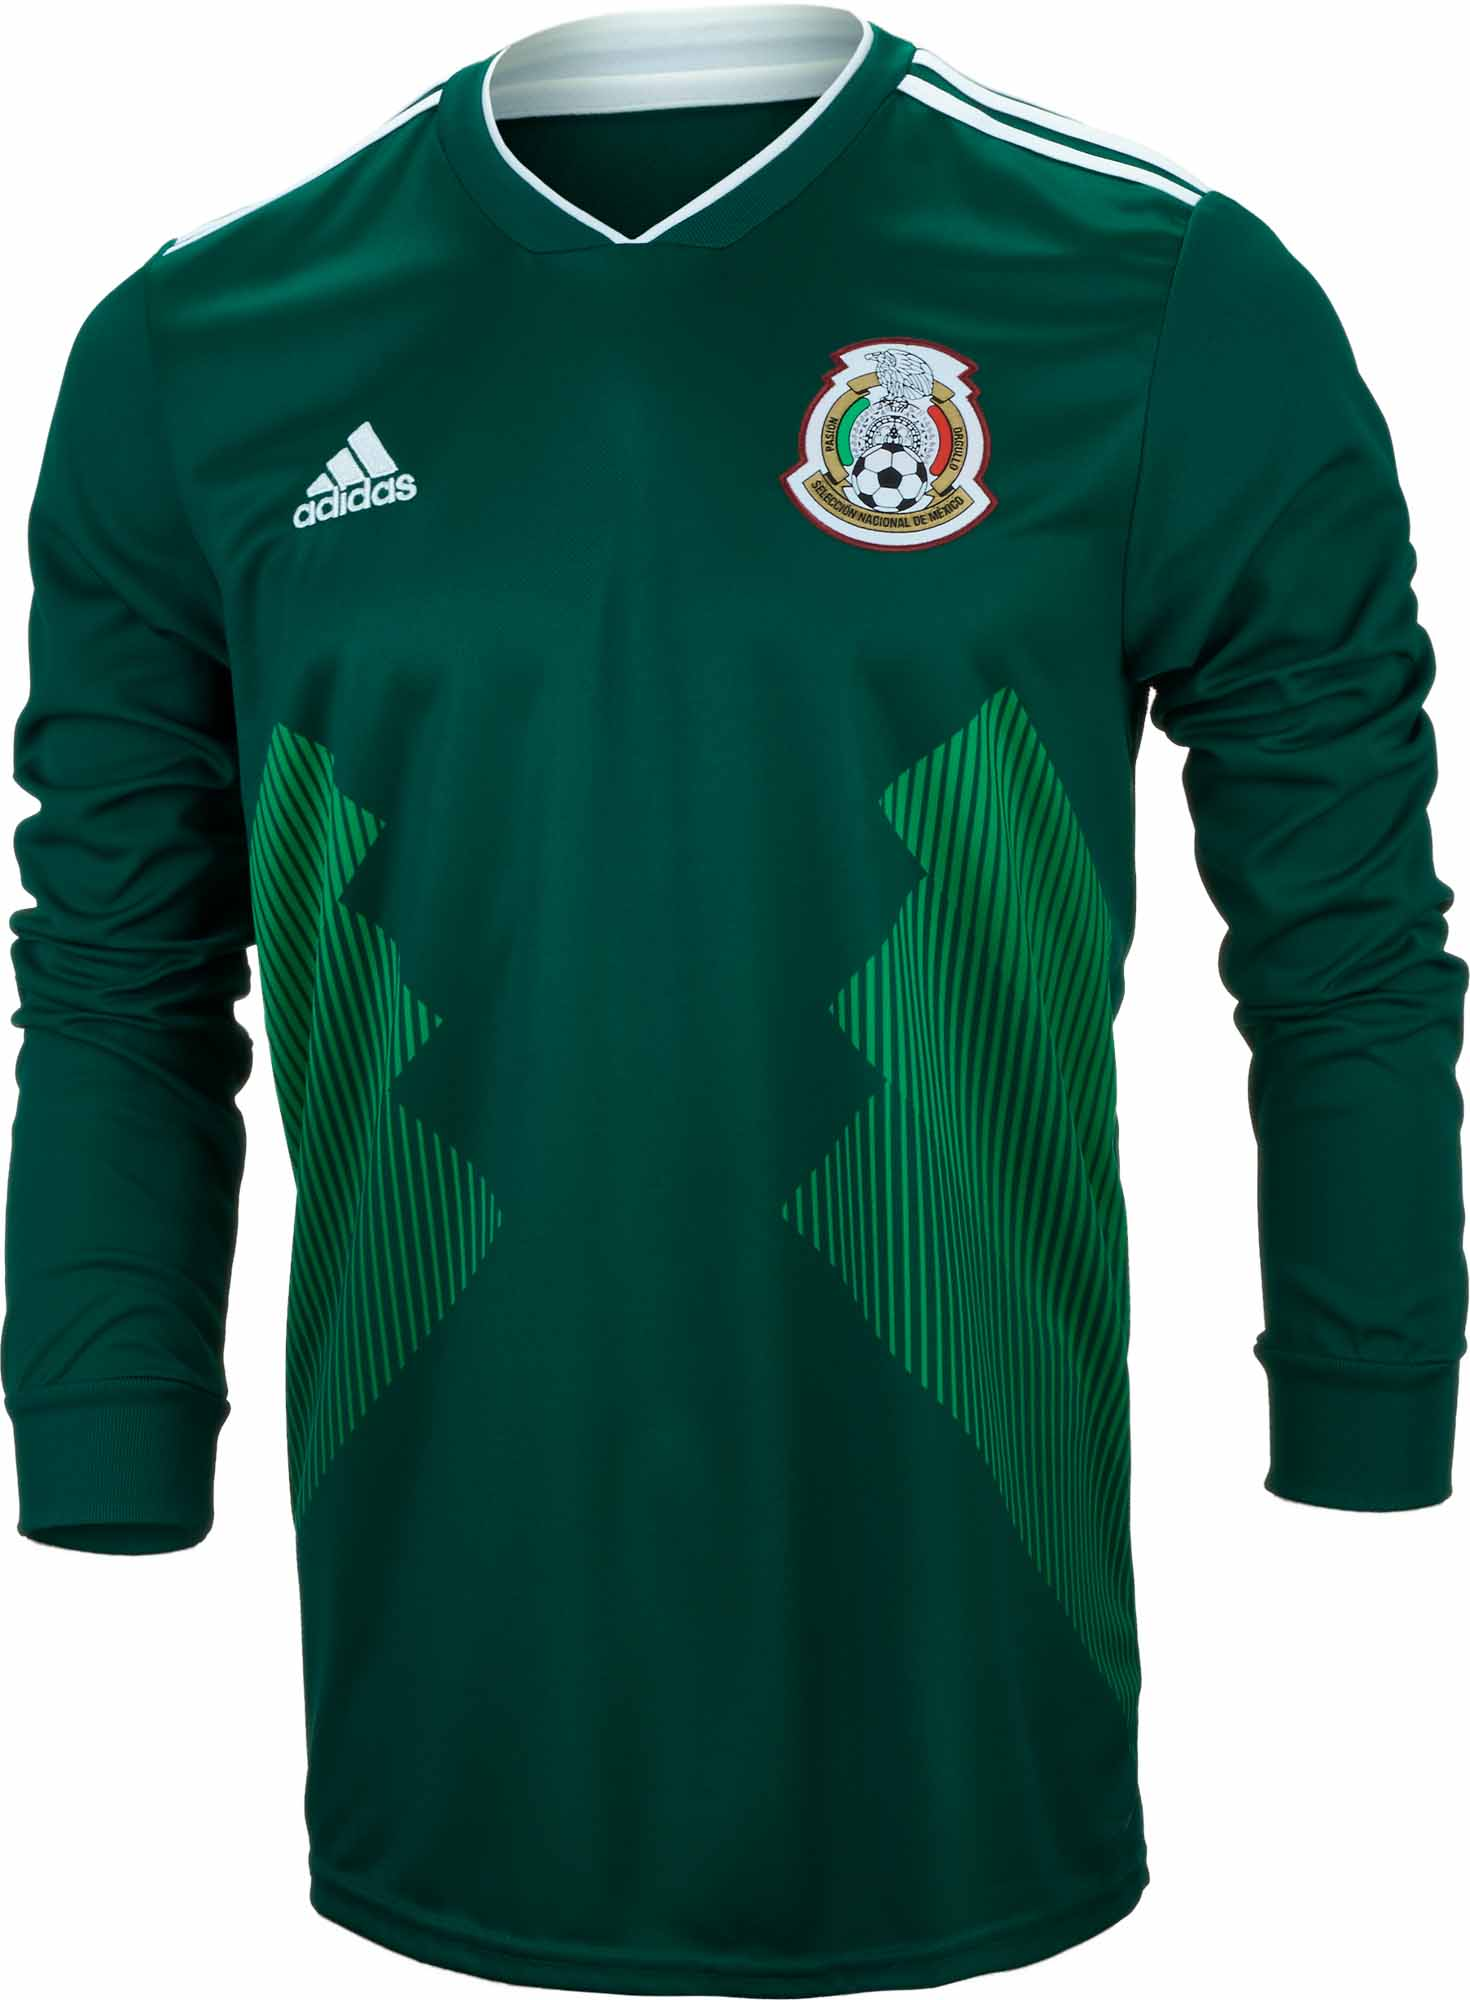 b59eecf986b adidas Mexico L S Home Jersey 2018-19 - Soccer Master